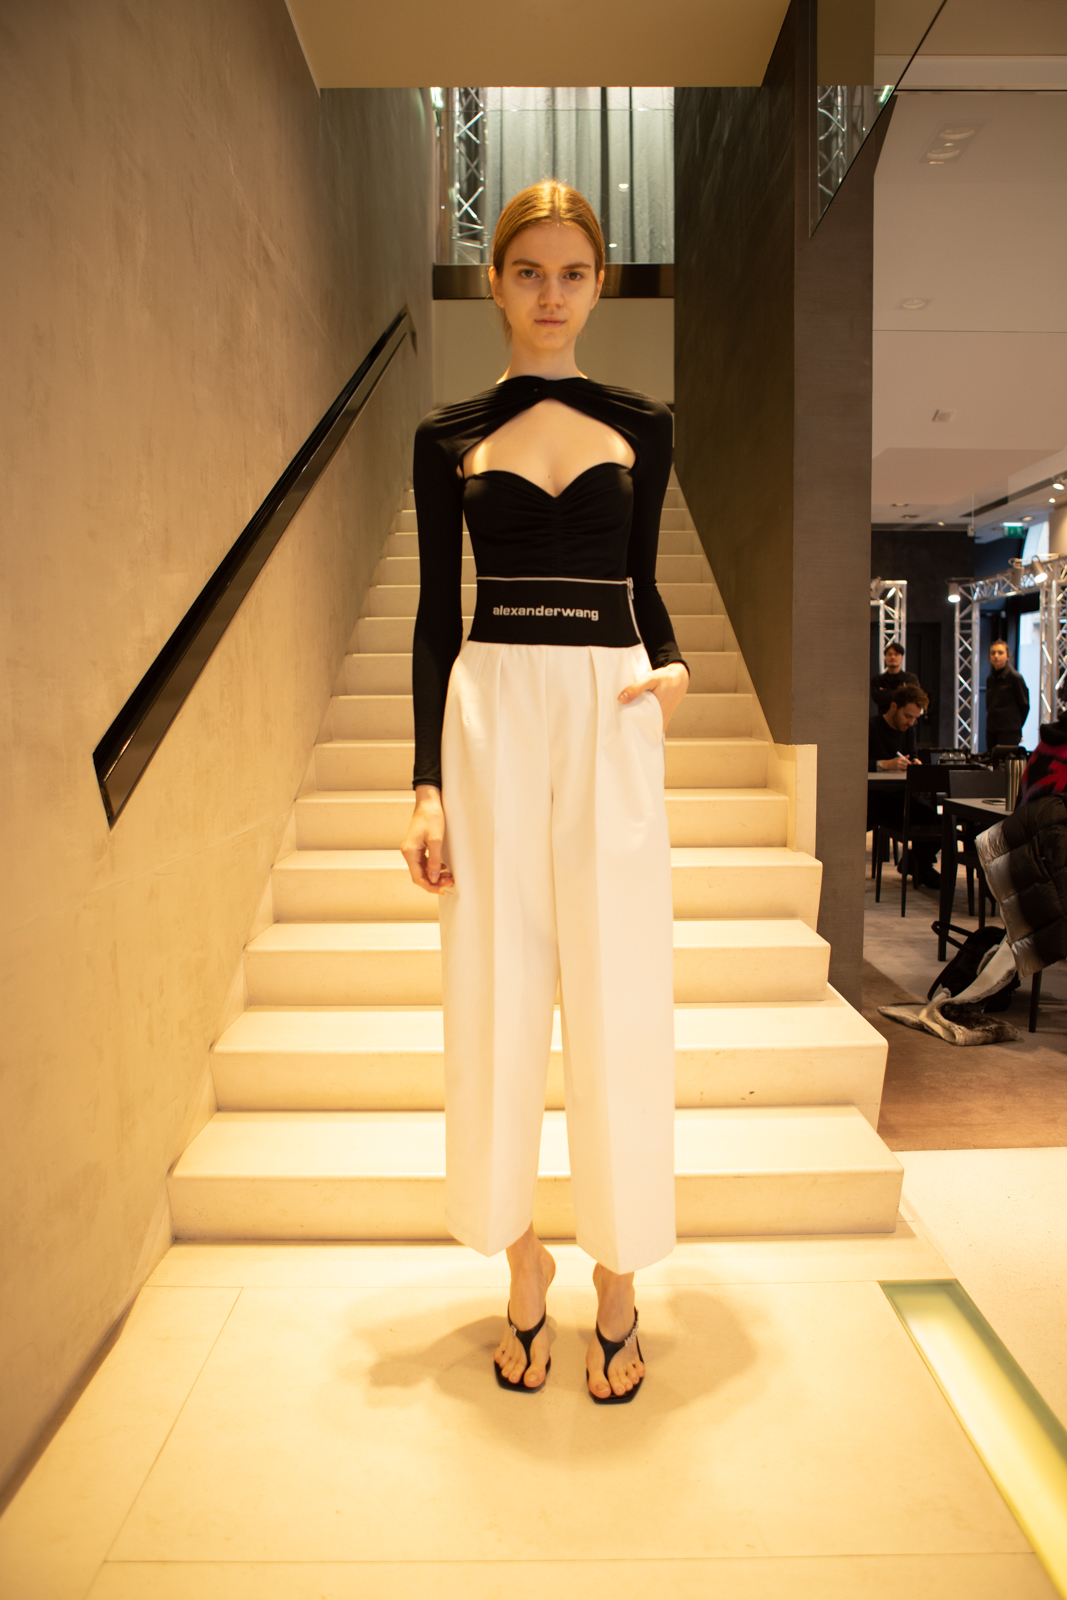 Alexander Wang Knot Cut Out Long Sleeve Top in Black Logo Elastic Carrot Pant in White FW 20